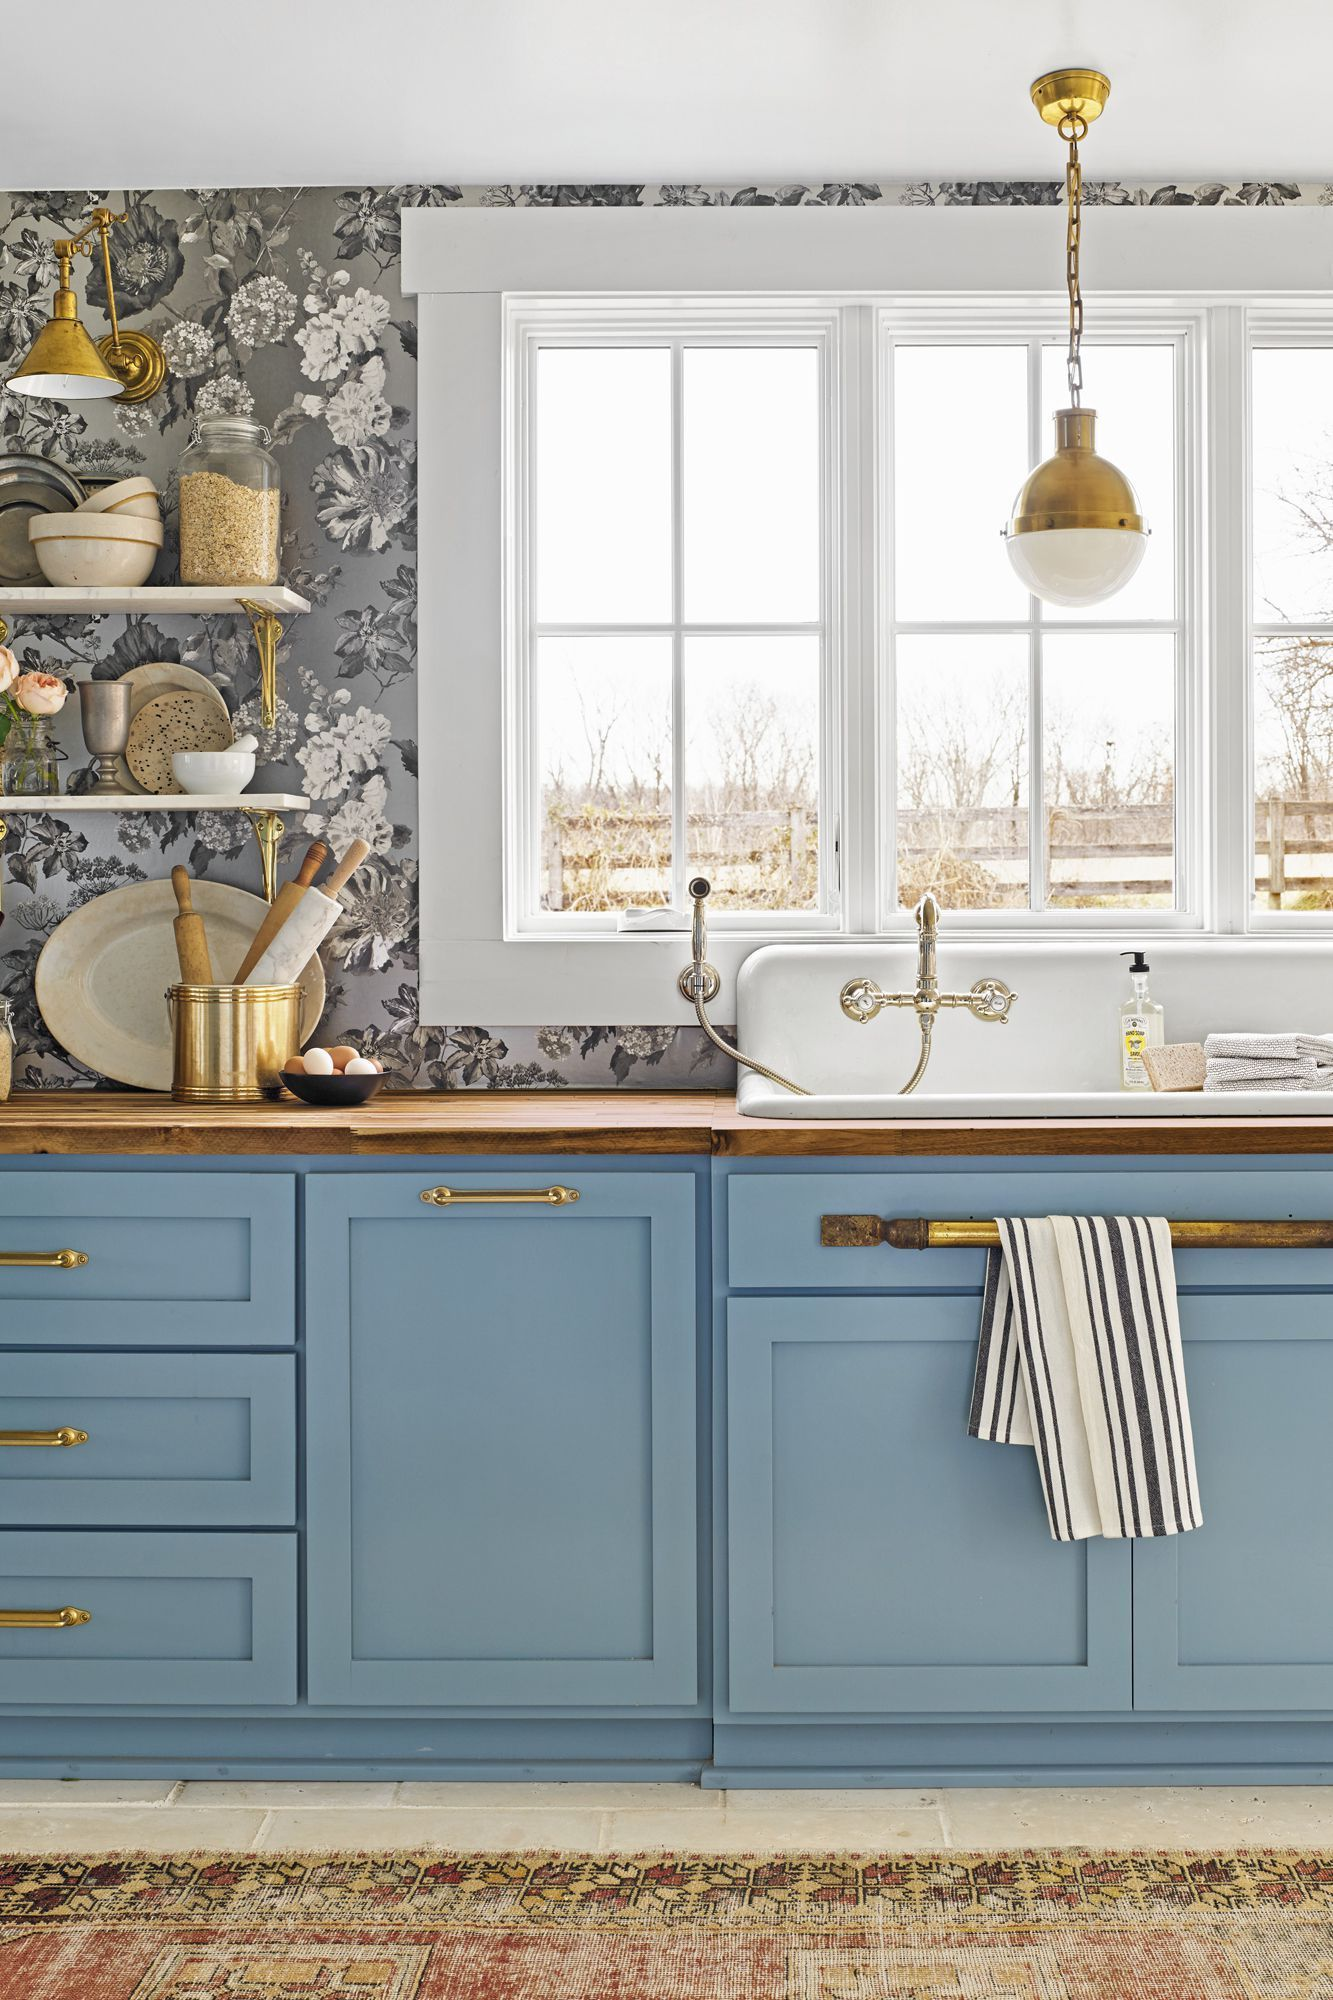 32 Kitchen Trends For 2020 That We Predict Will Be Everywhere Home Decor Kitchen Luxury Kitchens Country Kitchen Decor